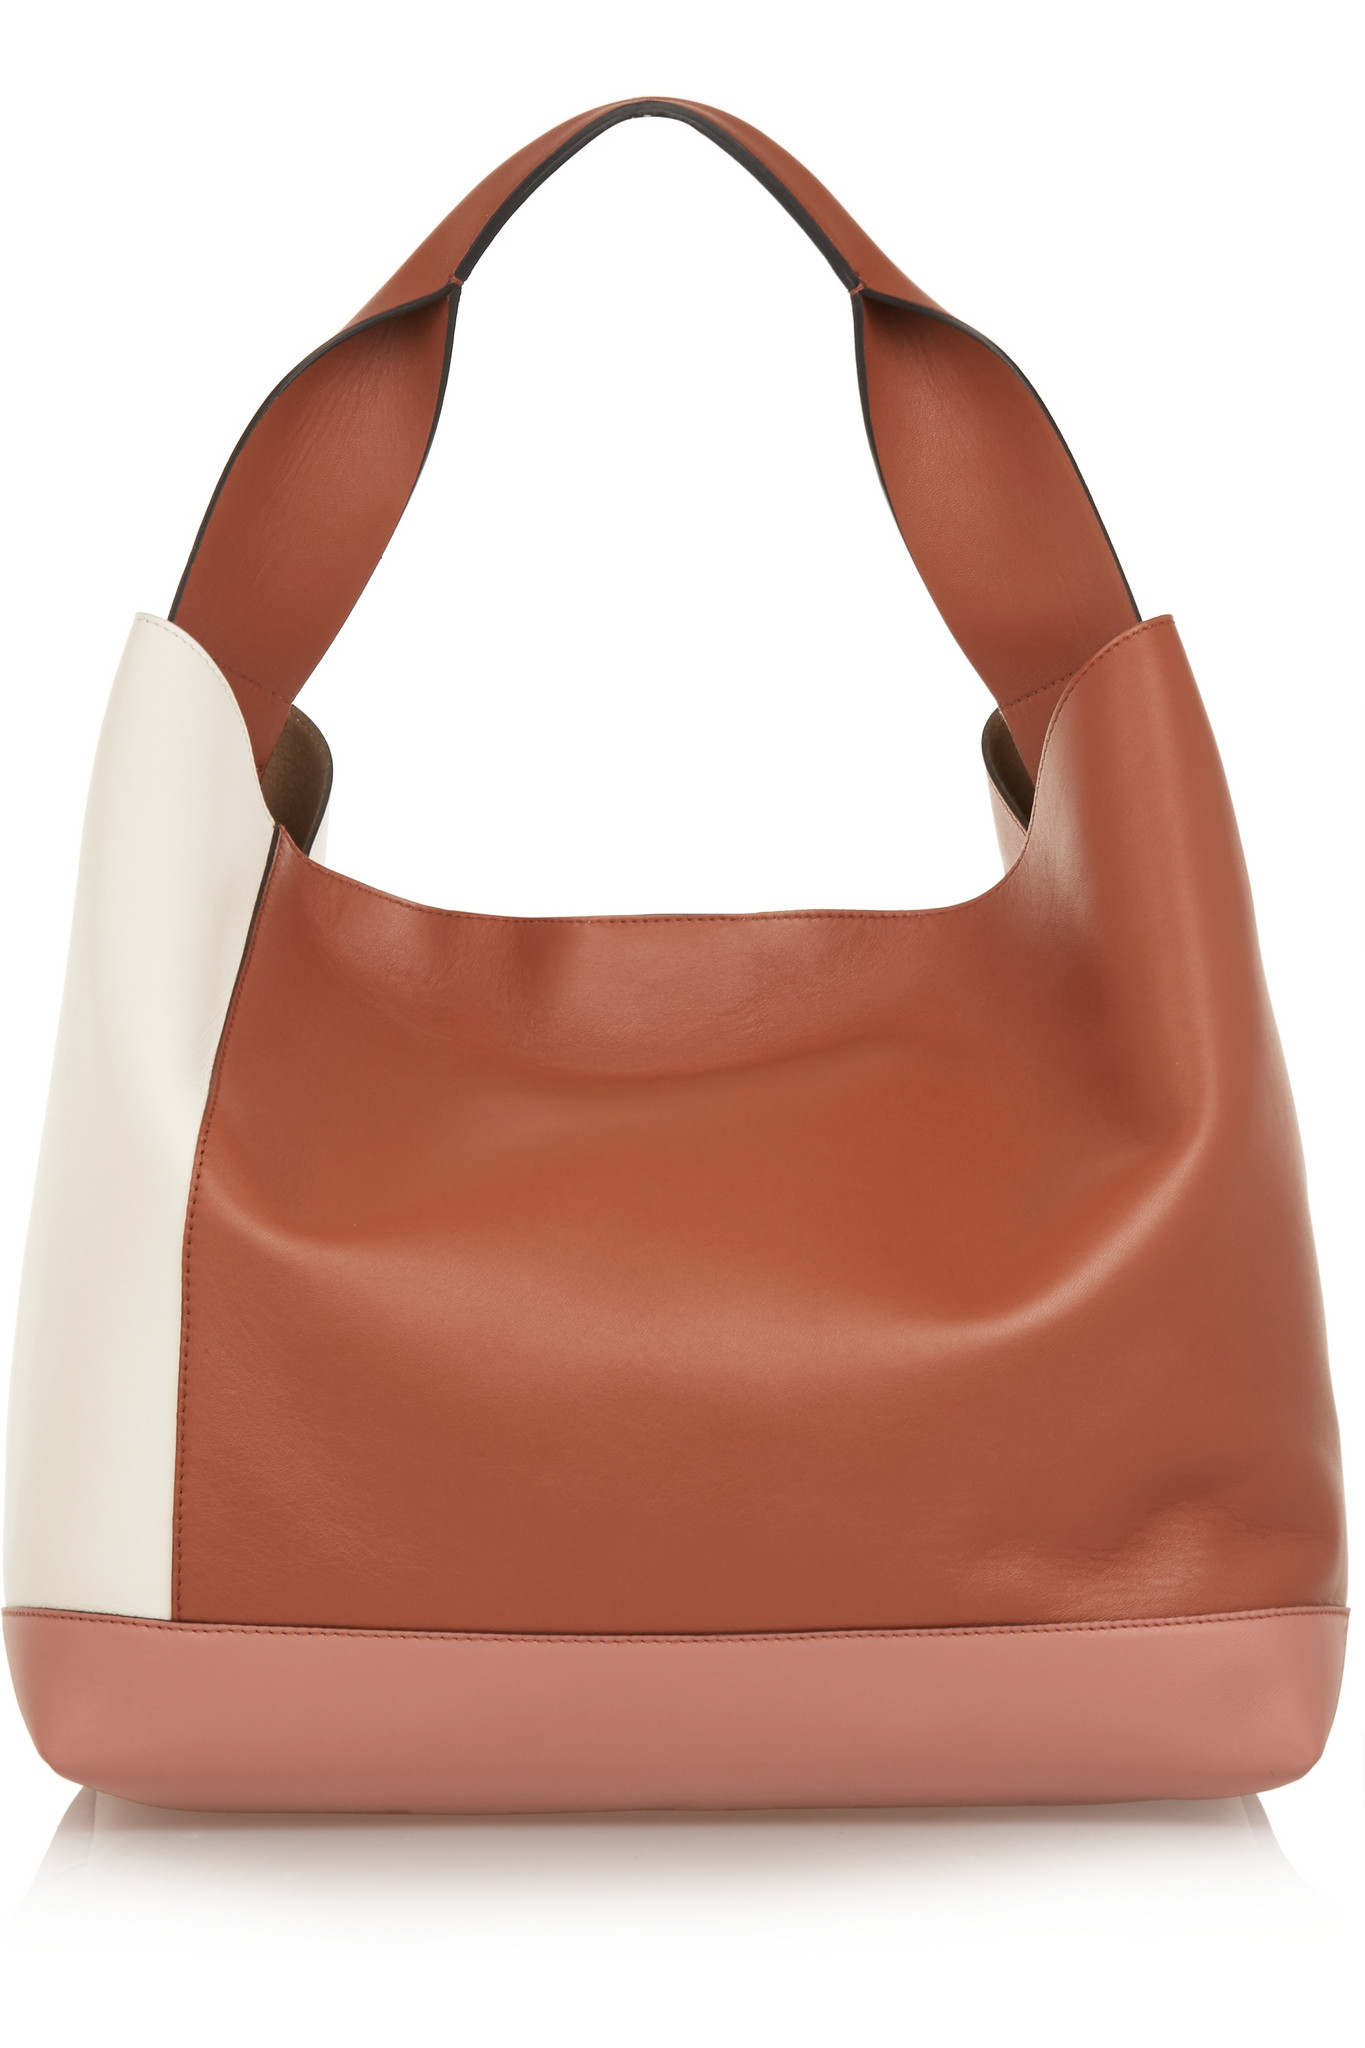 colour blocked tote bag - Brown Marni